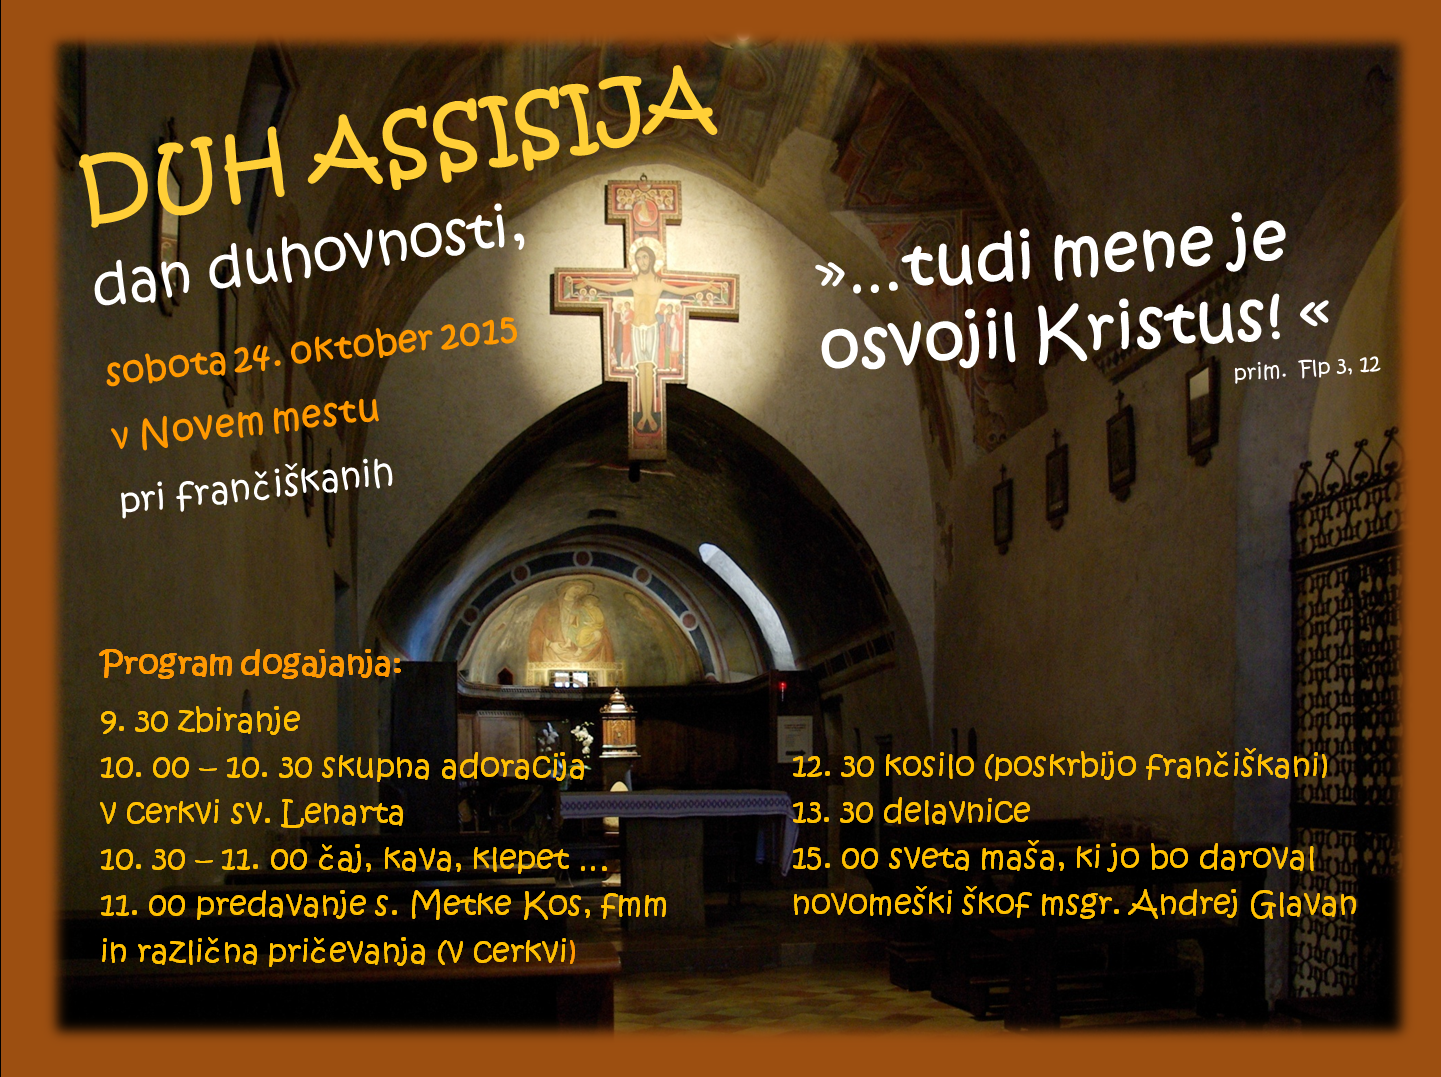 duh-assisija-oktober-2015-NM